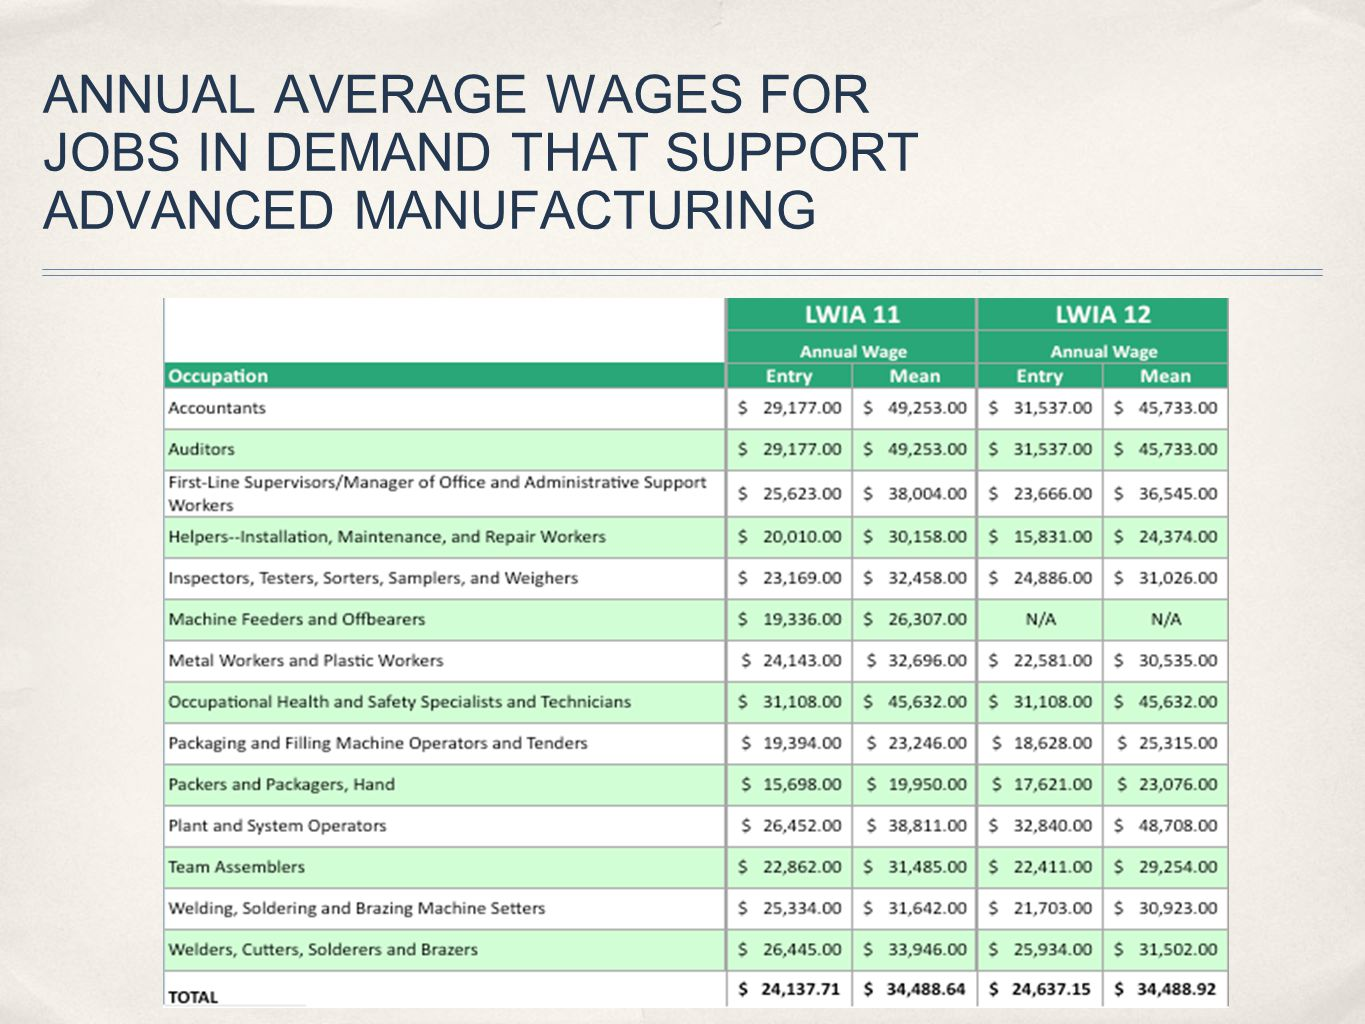 ANNUAL AVERAGE WAGES FOR JOBS IN DEMAND THAT SUPPORT ADVANCED MANUFACTURING